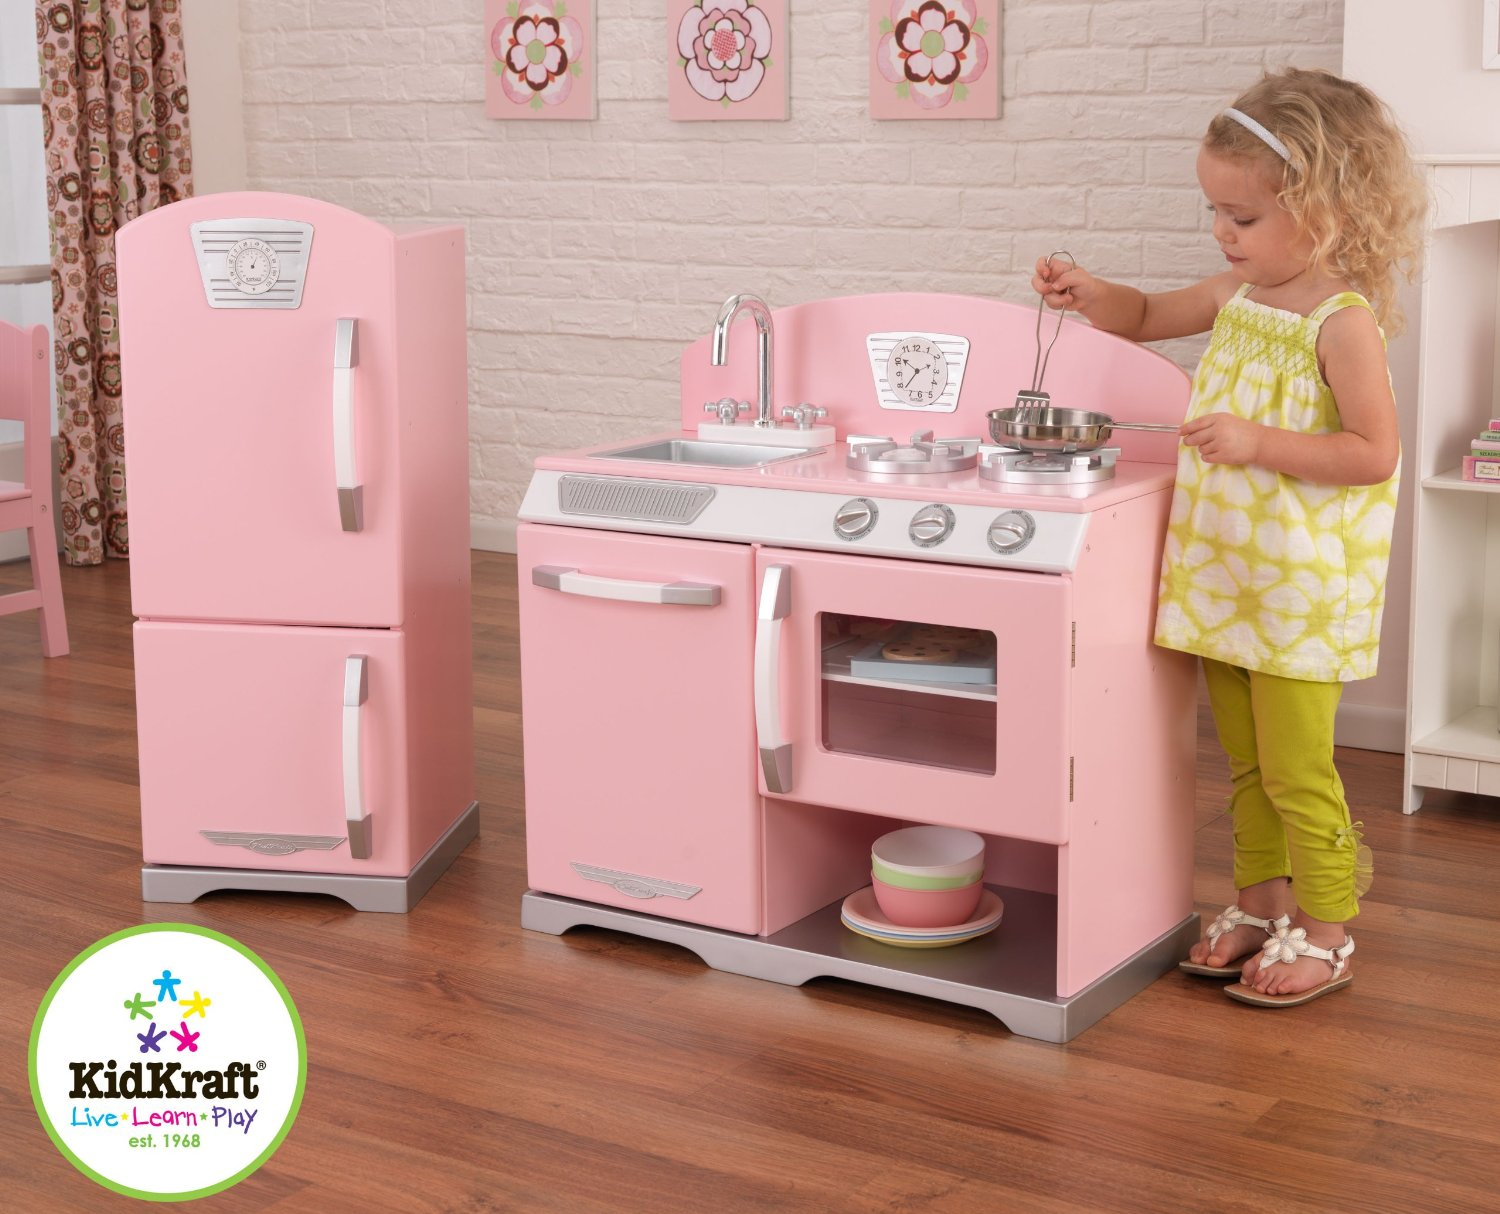 Good Wood Play Kitchen Sets | HomesFeed Cheap Play Kitchen Sets on skin care sets cheap, bedroom sets cheap, crib sets cheap, play dough sets cheap,